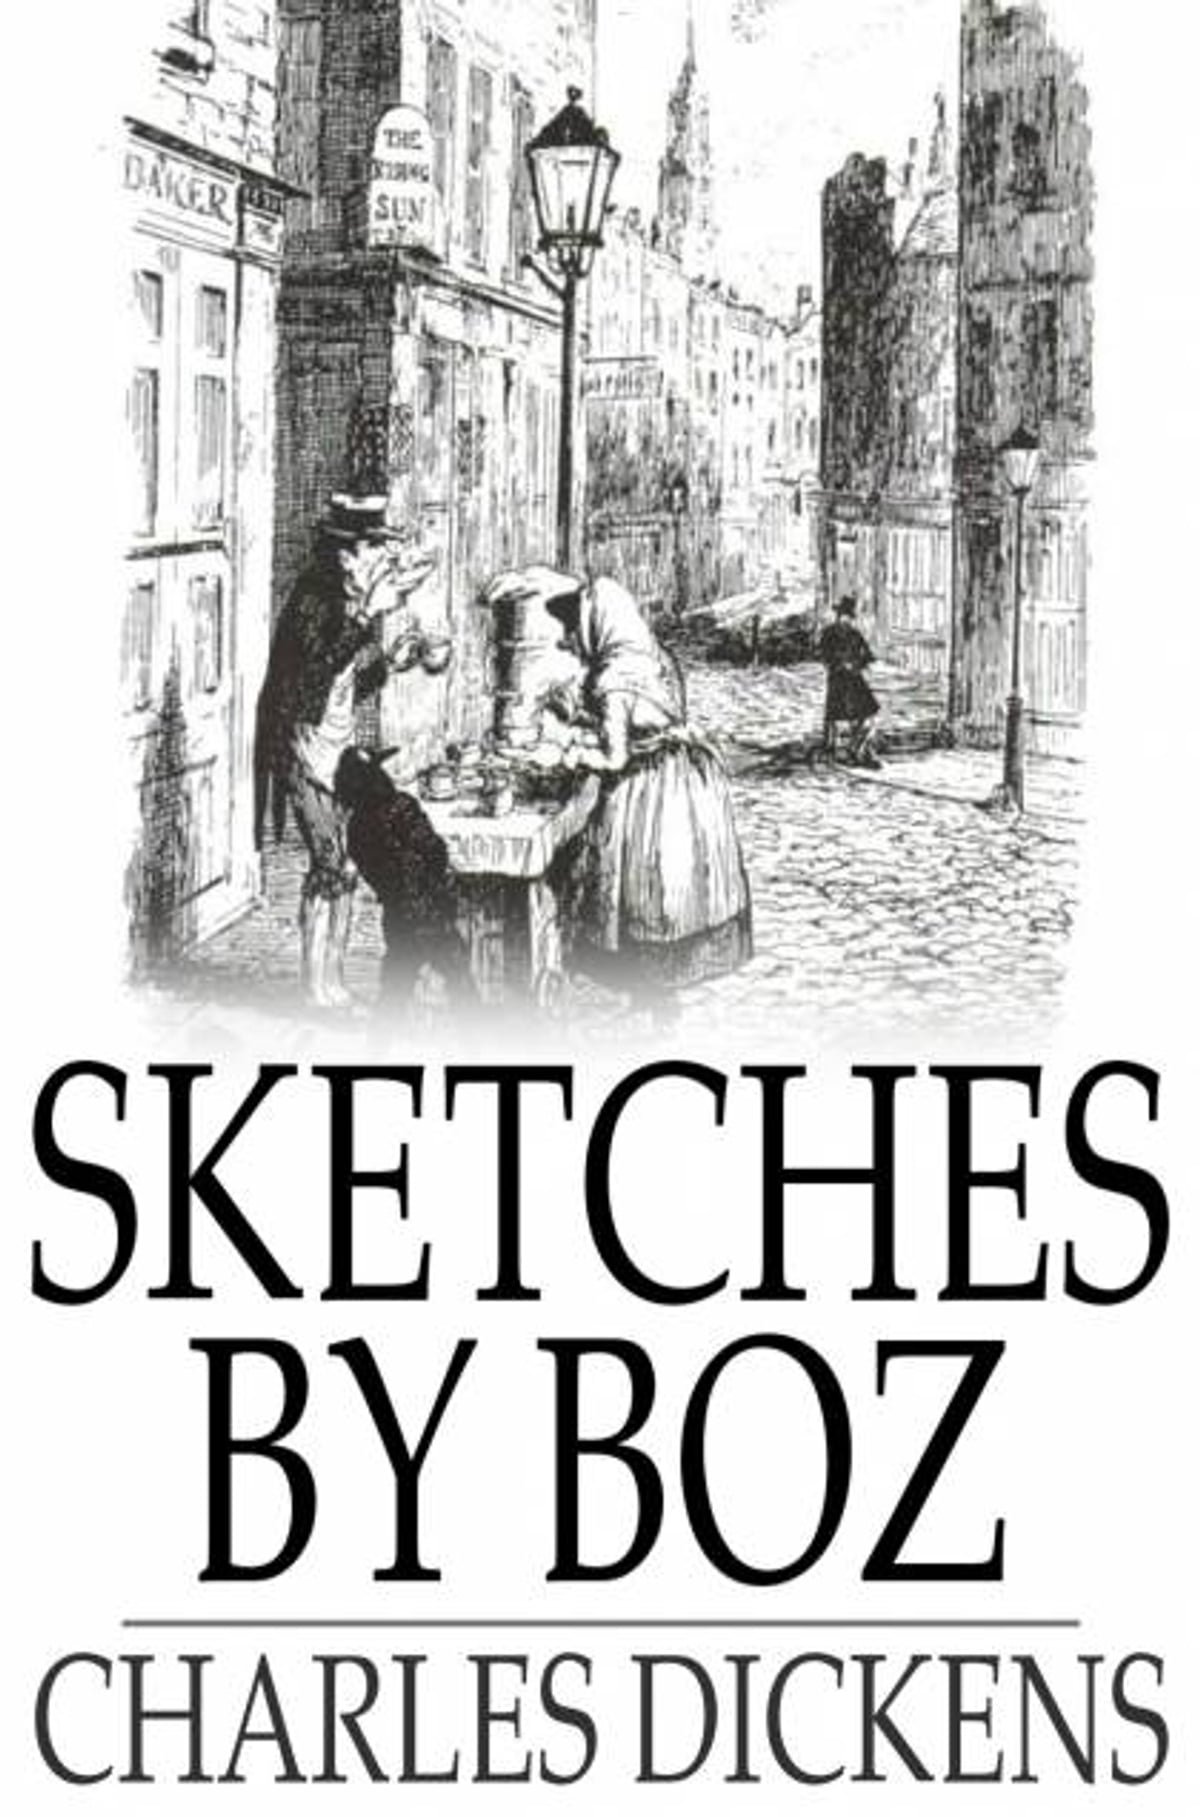 charles dickens sketches